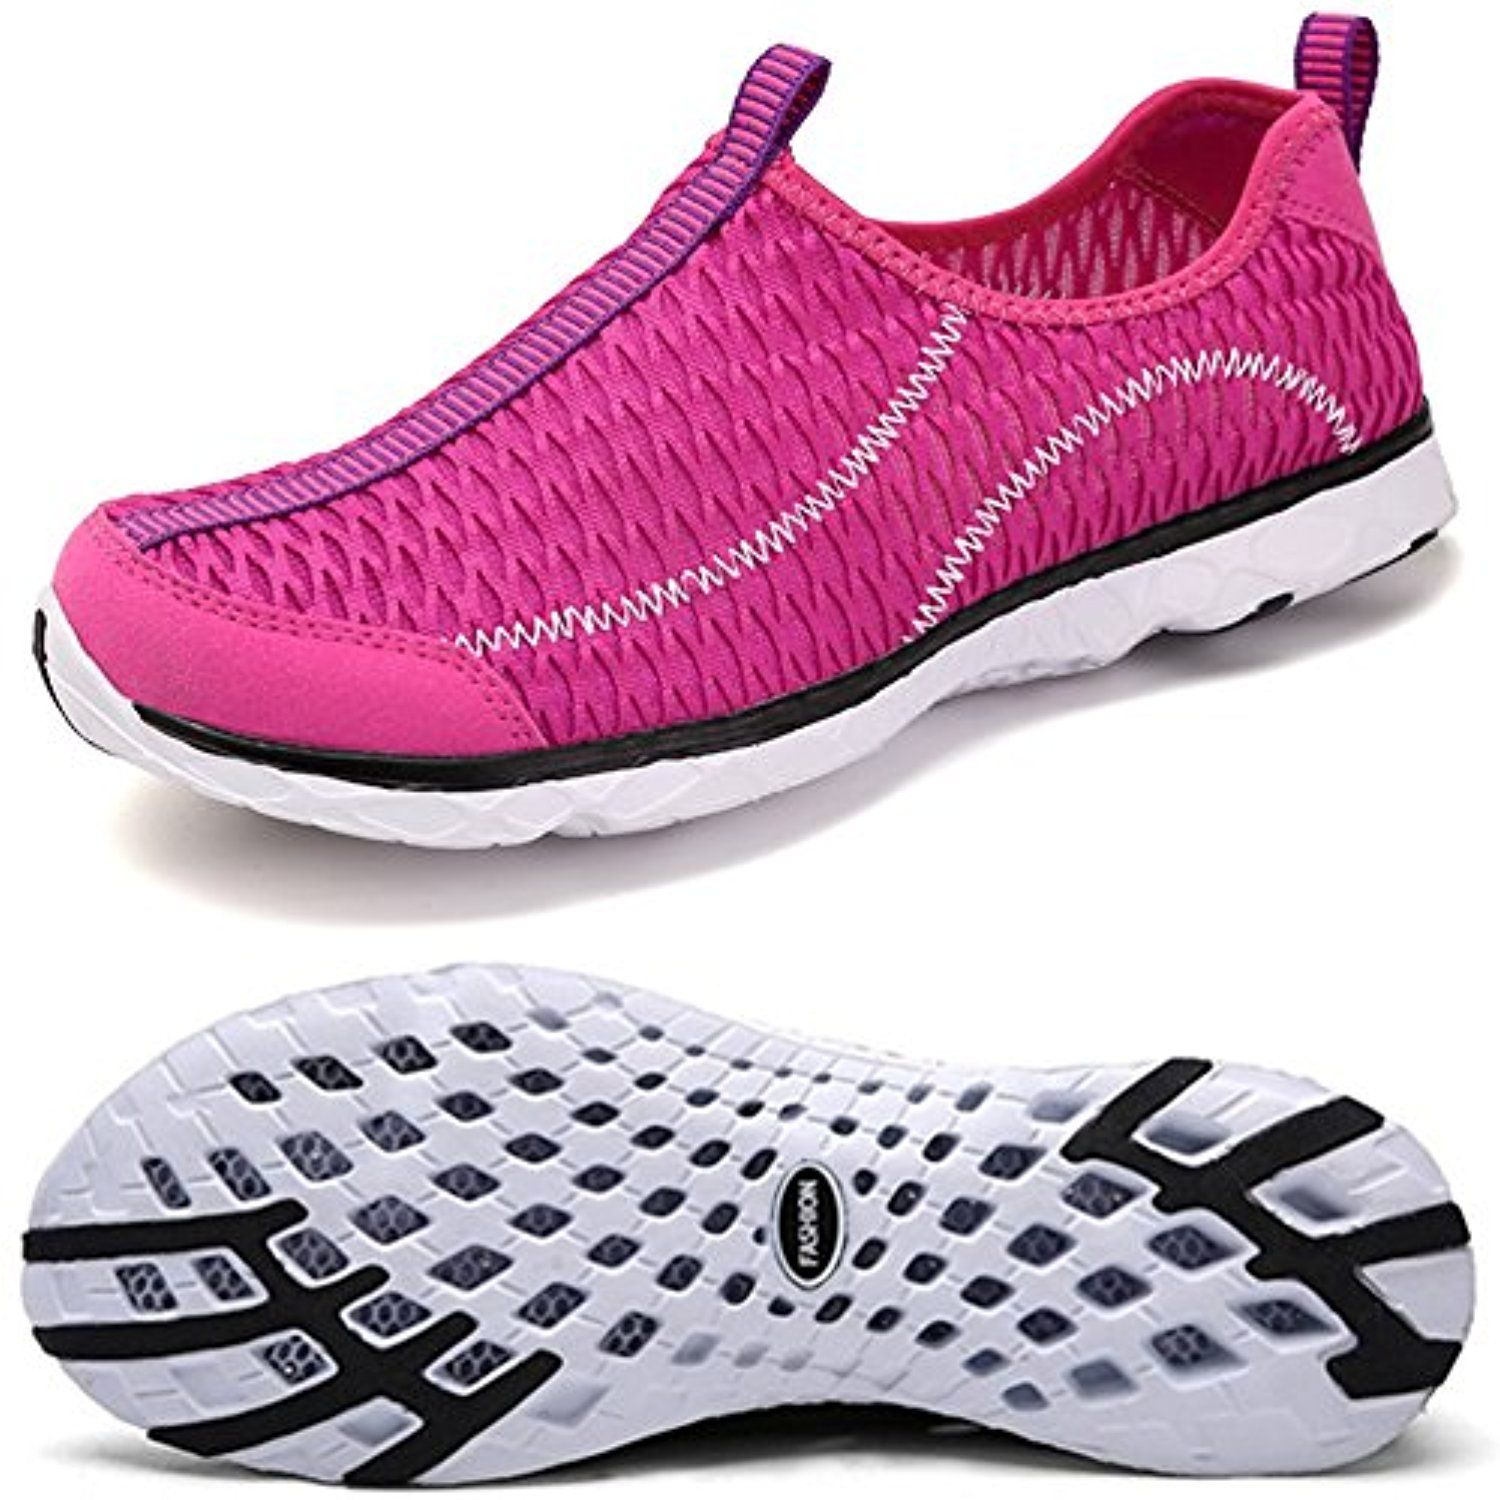 74c8367e9391b7 Womens Mens Water Shoes Quick Drying Slip-on Beach Running Shoes  Lightweight Aqua Water Sneakers -- Learn more by visiting the image link.